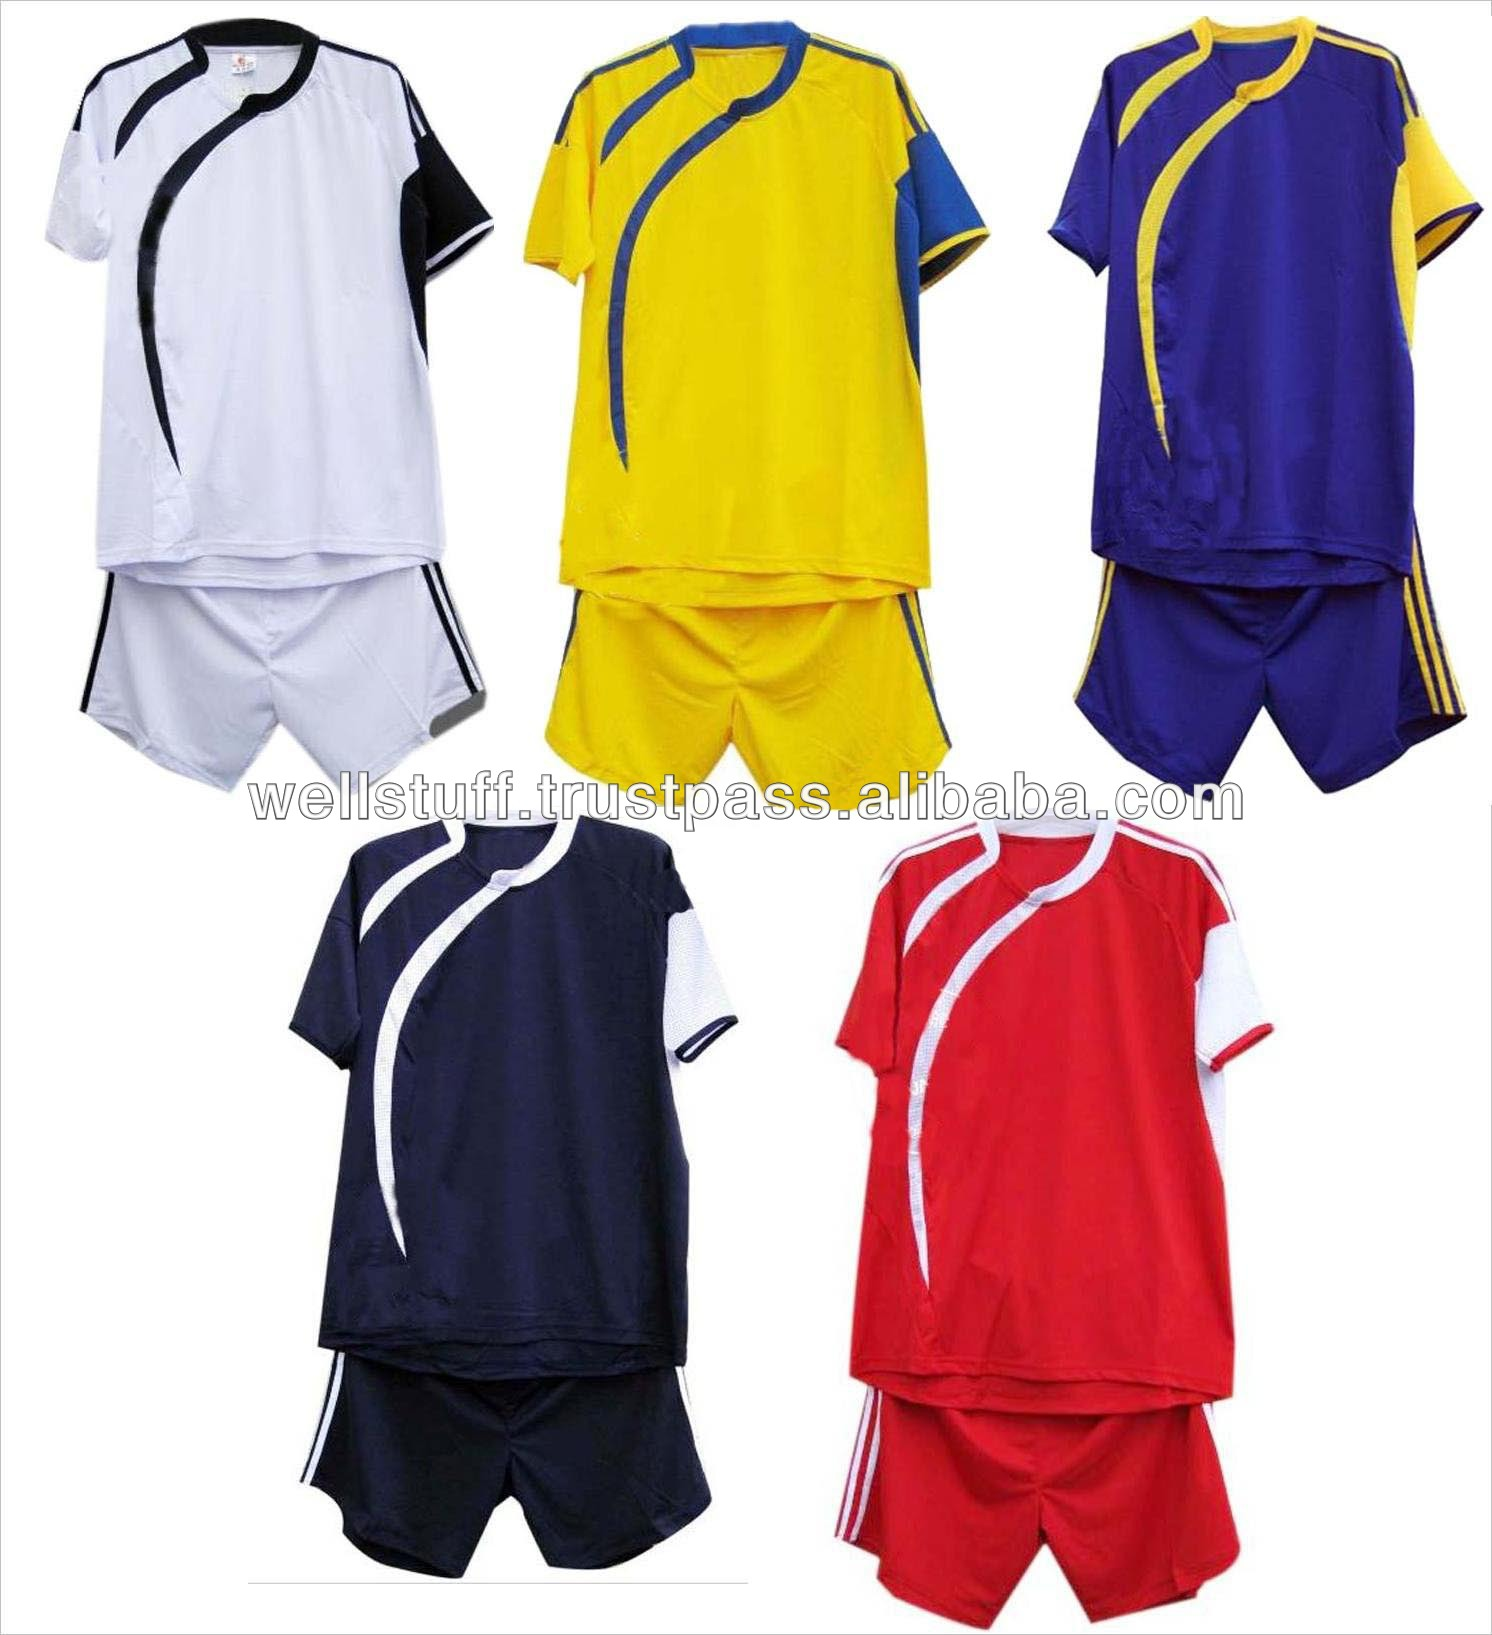 Customize Soccer Jerseys